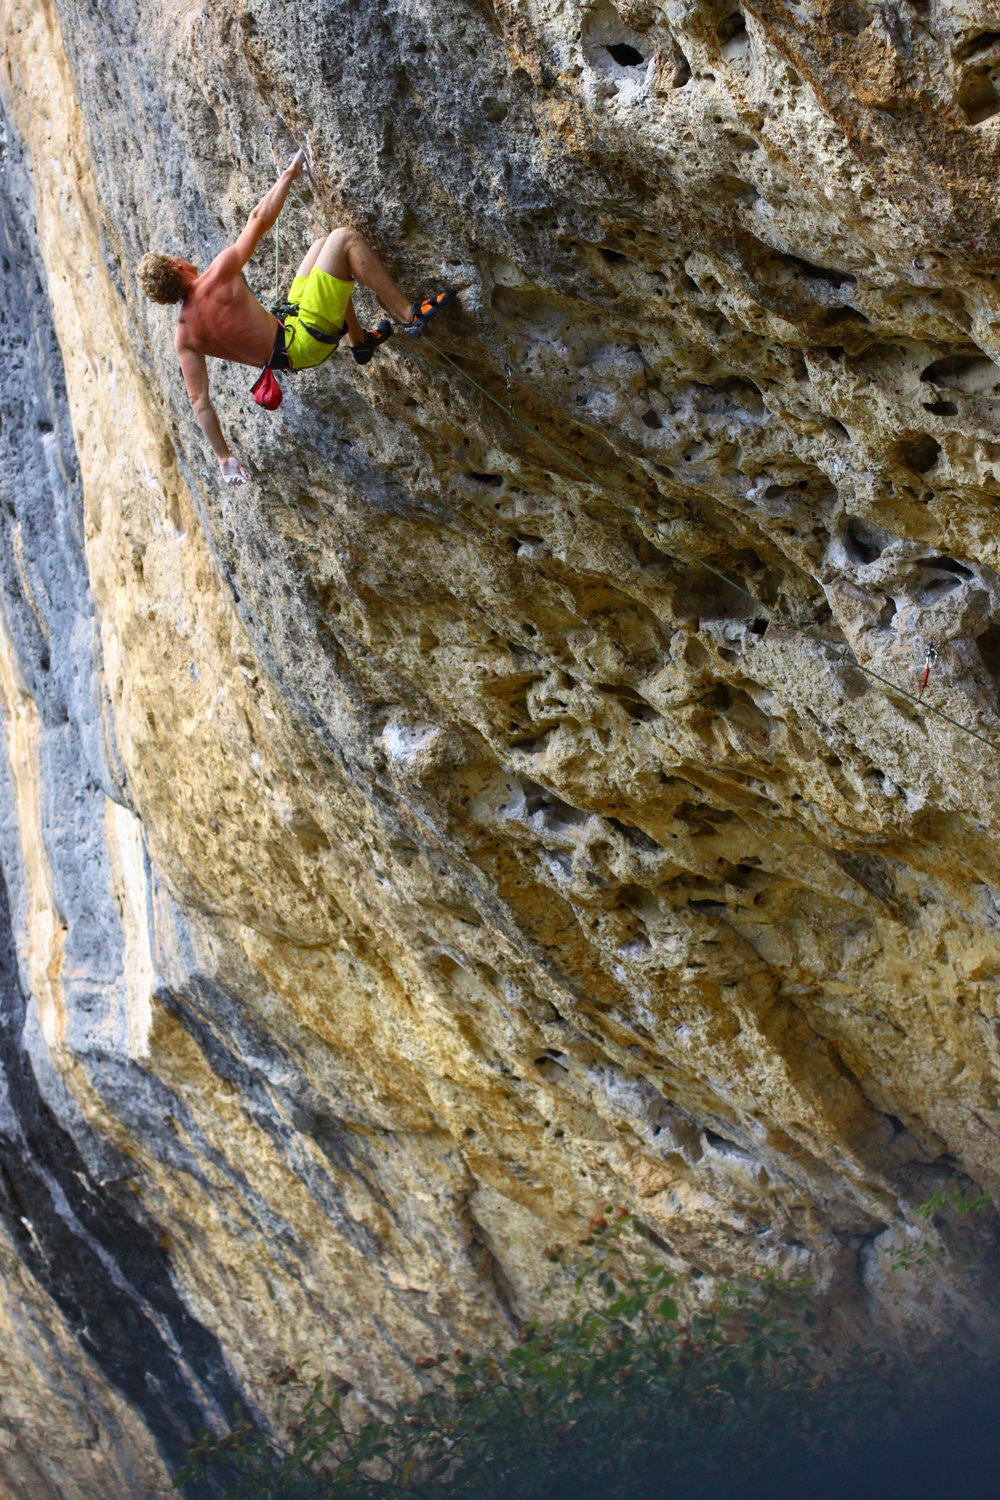 vagabond d'occident (7c), ceuse. france. photo: rachel slater